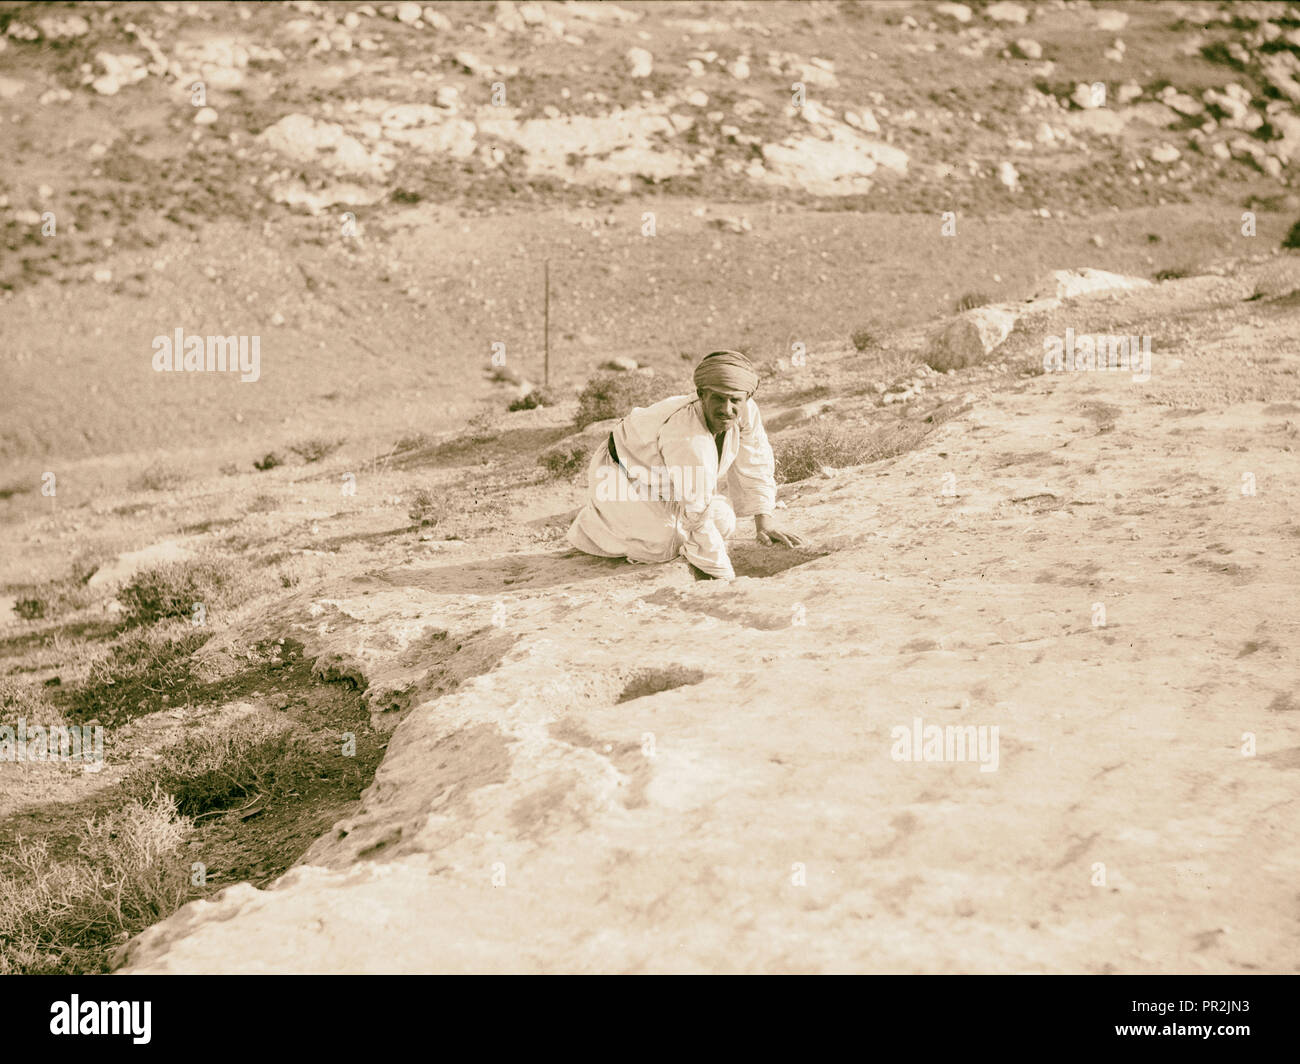 Various subjects of archaeological interest A primitive winepress showing small settling bowls. 1920, Middle East, Israel - Stock Image